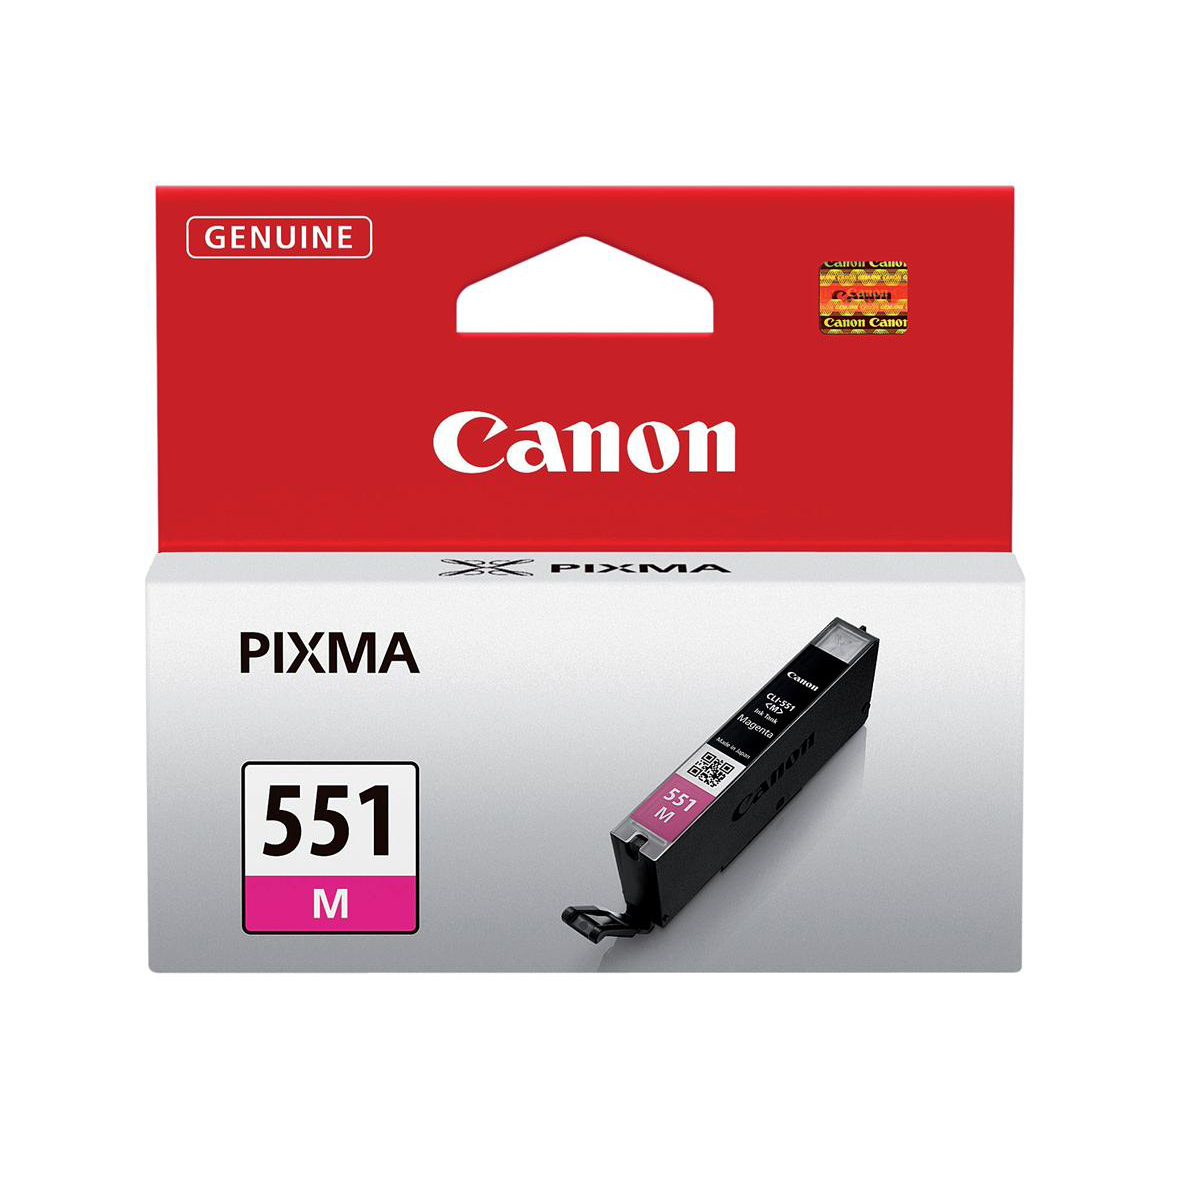 Inkjet Cartridges Canon CLI-551M Inkjet Cartridge Page Life 298pp 7ml Magenta Ref 6510B001